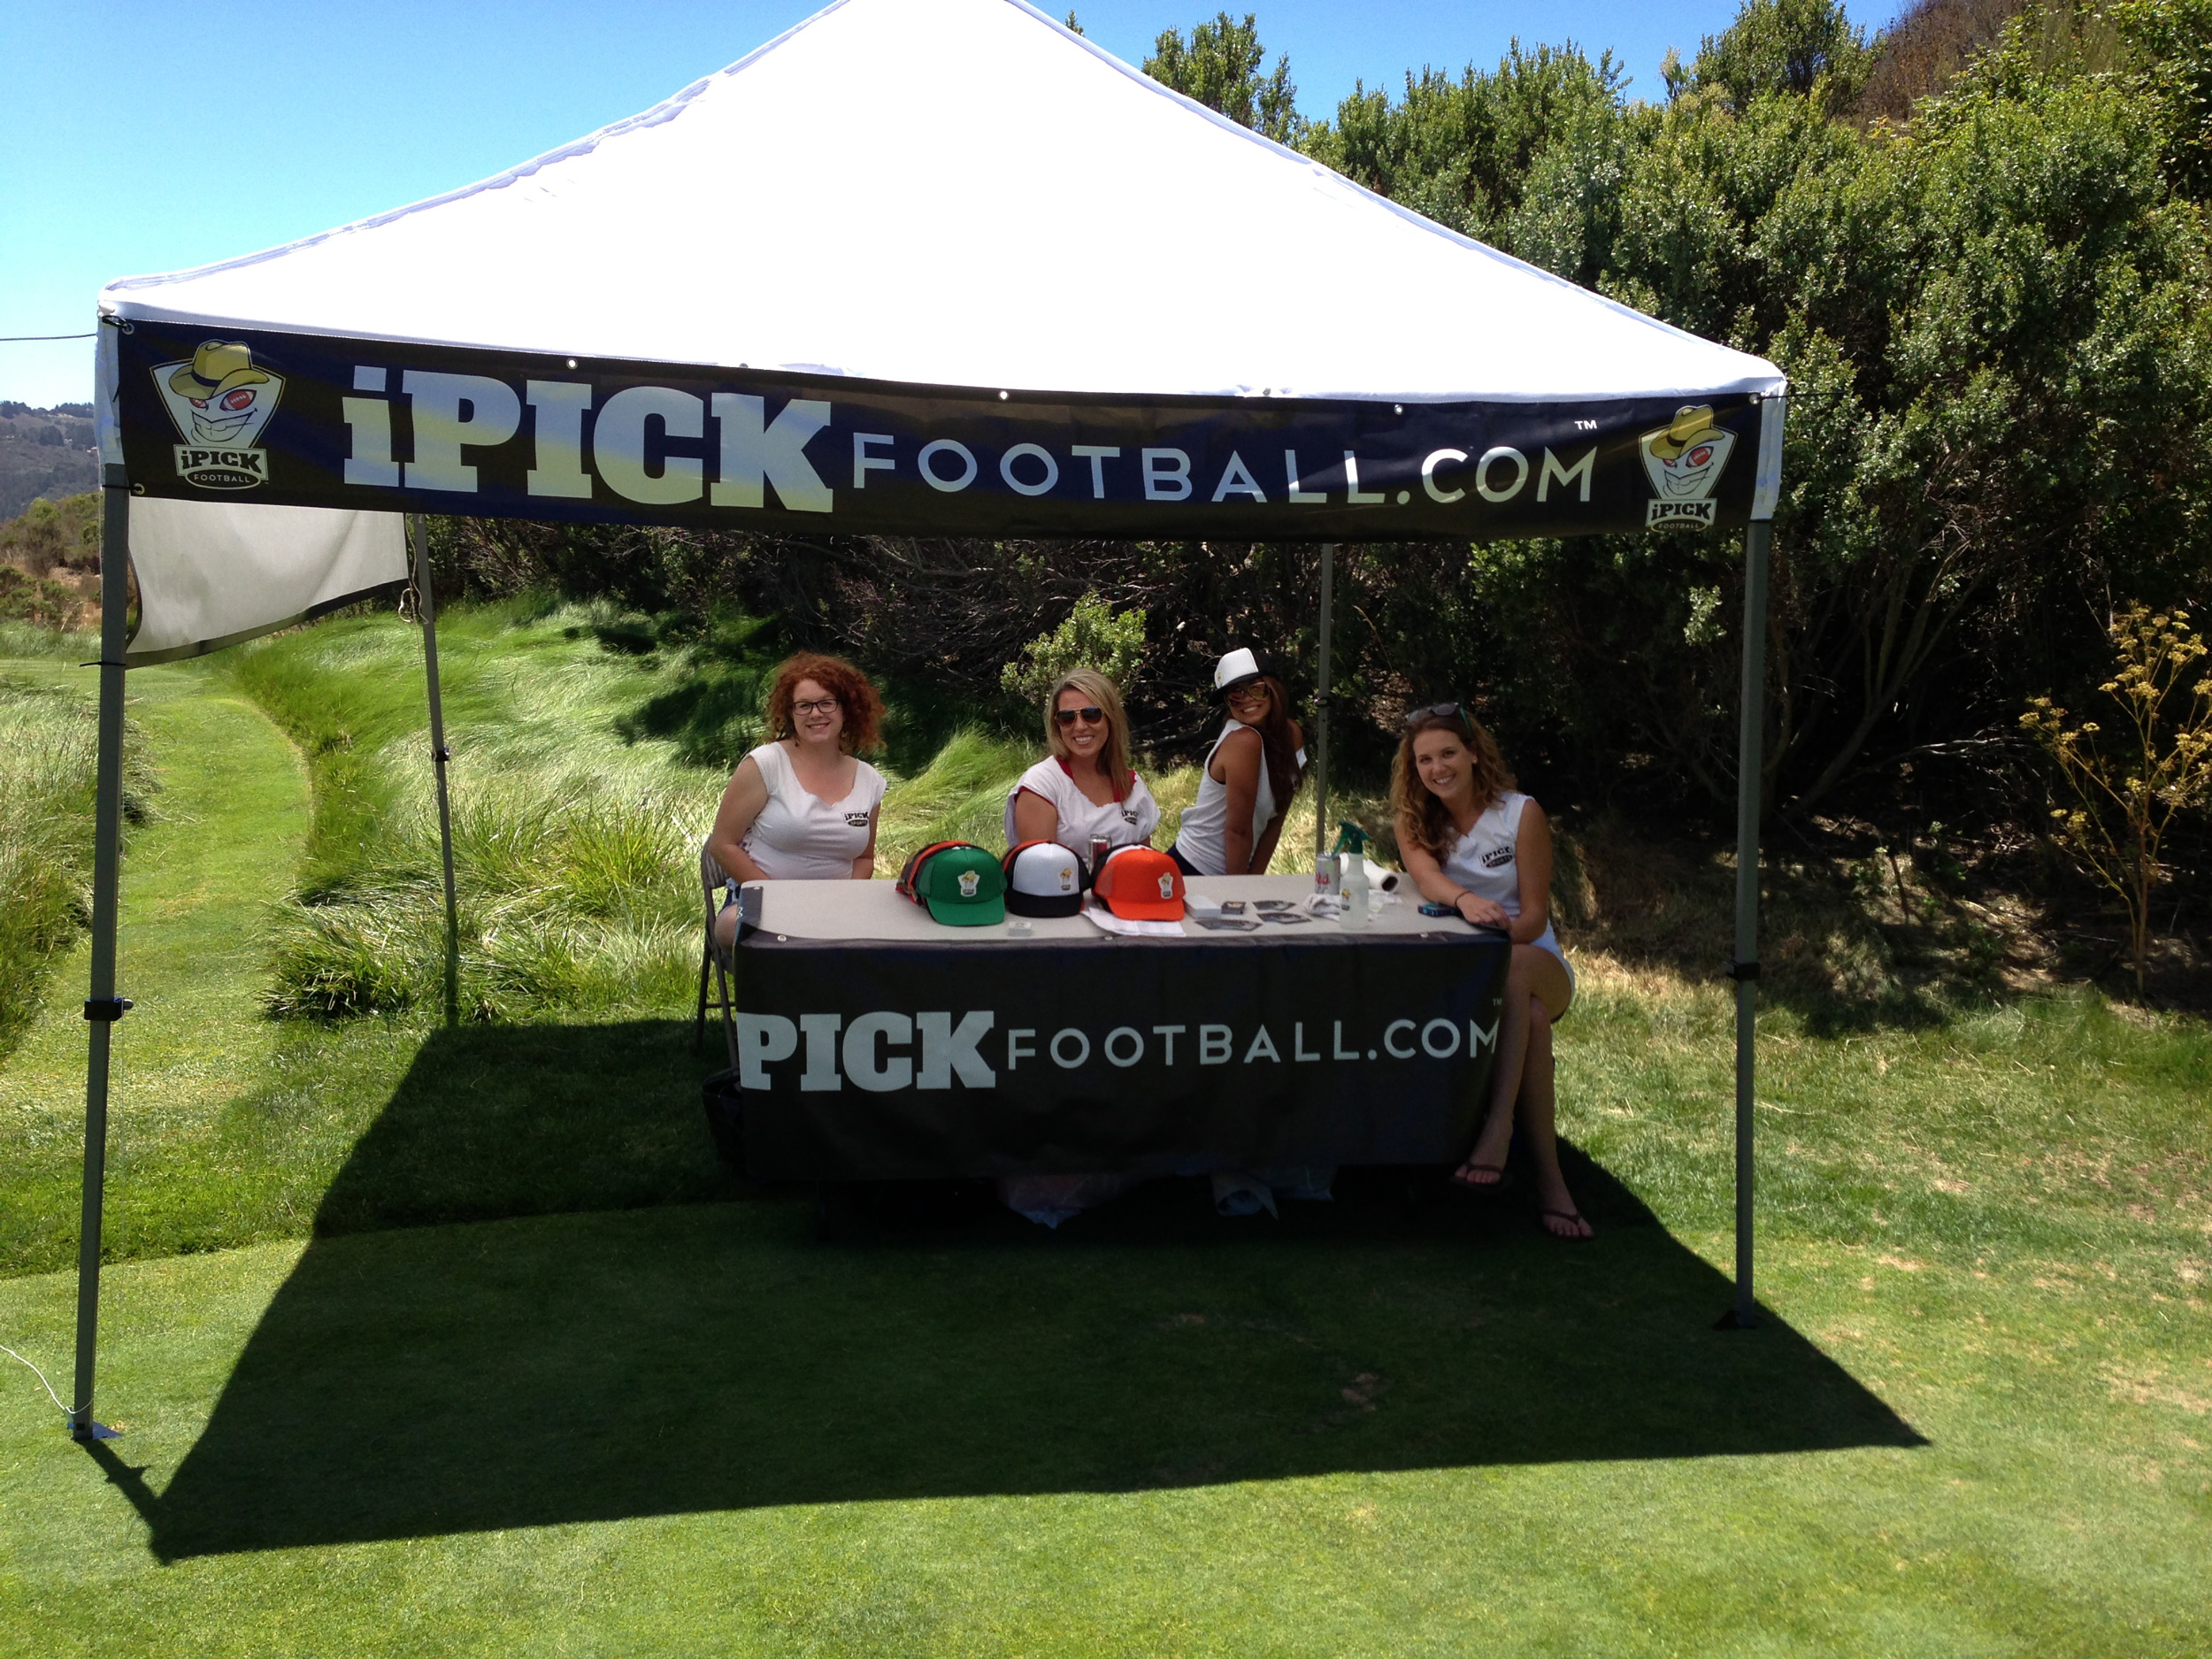 iPick Football - booth banners